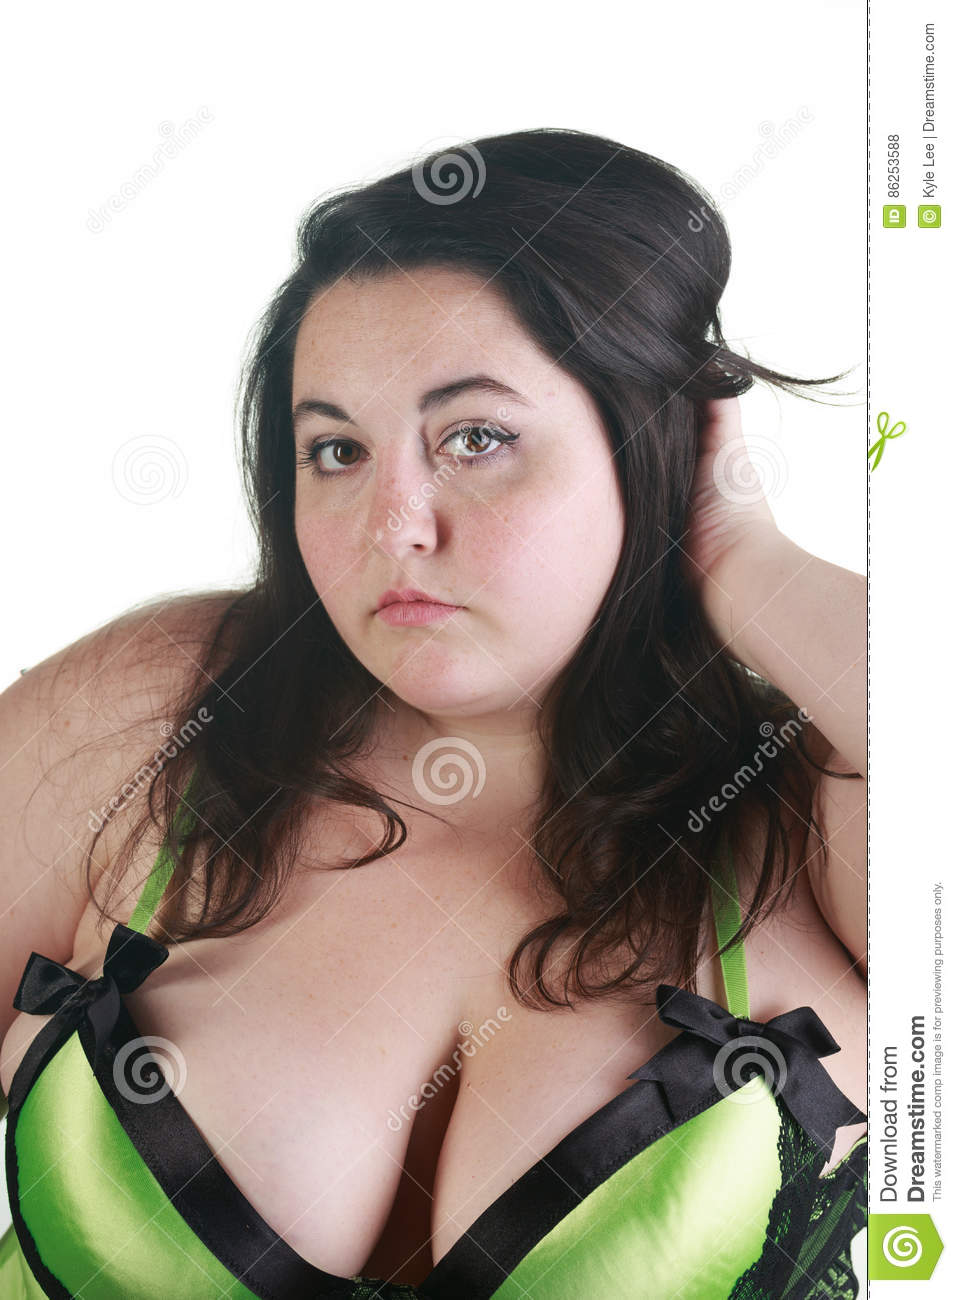 plus size woman posing in the studio stock photo - image of female